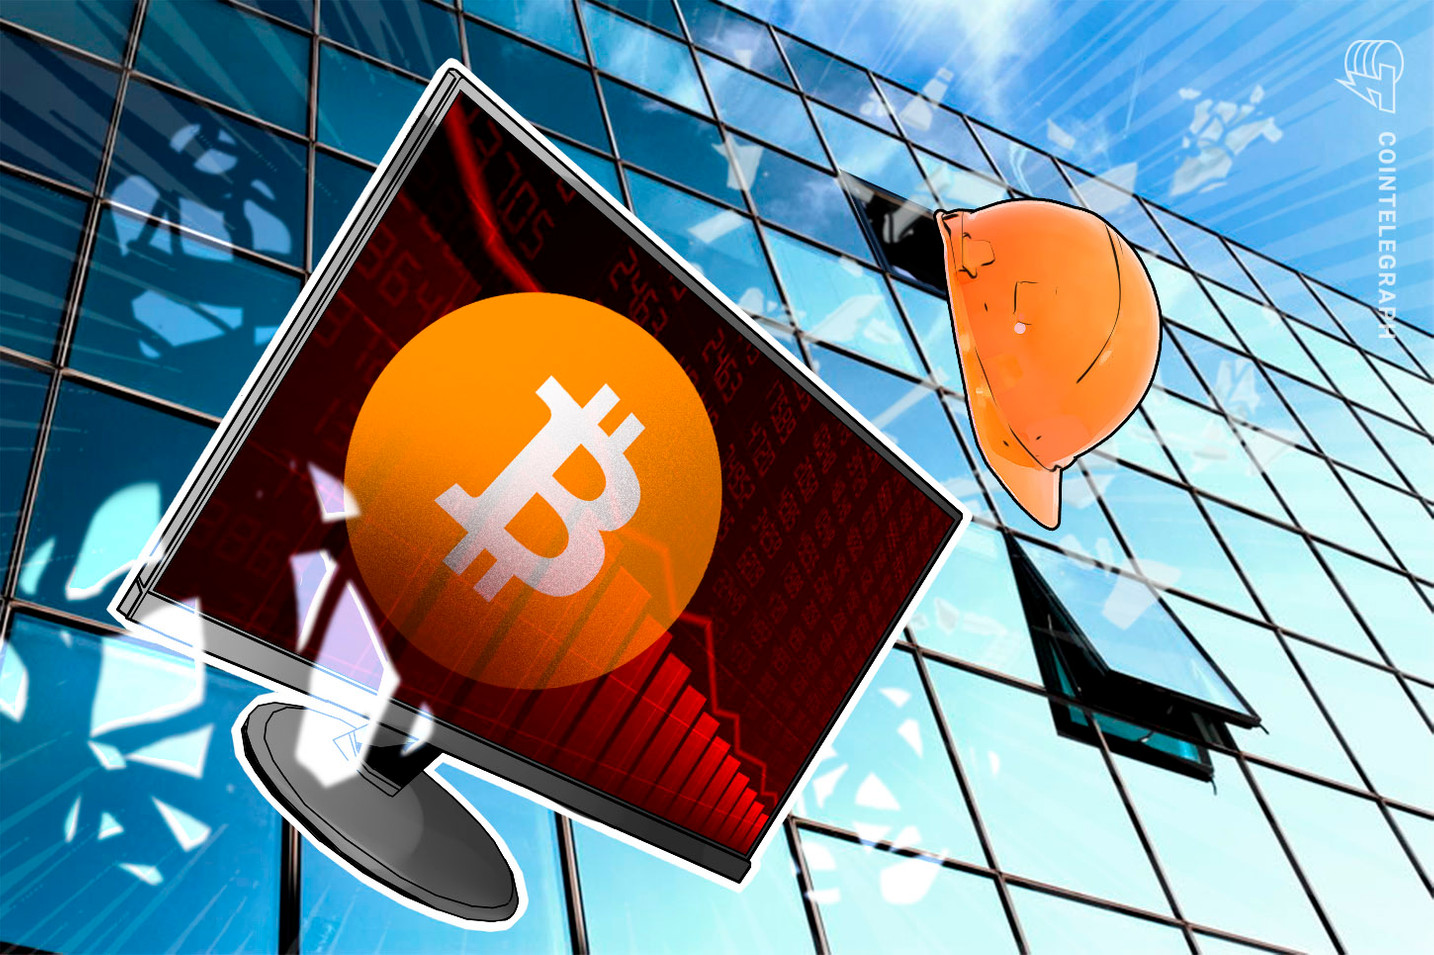 Hashrate do Bitcoin cai 30% - 'Sinal de alta', dizem especialistas